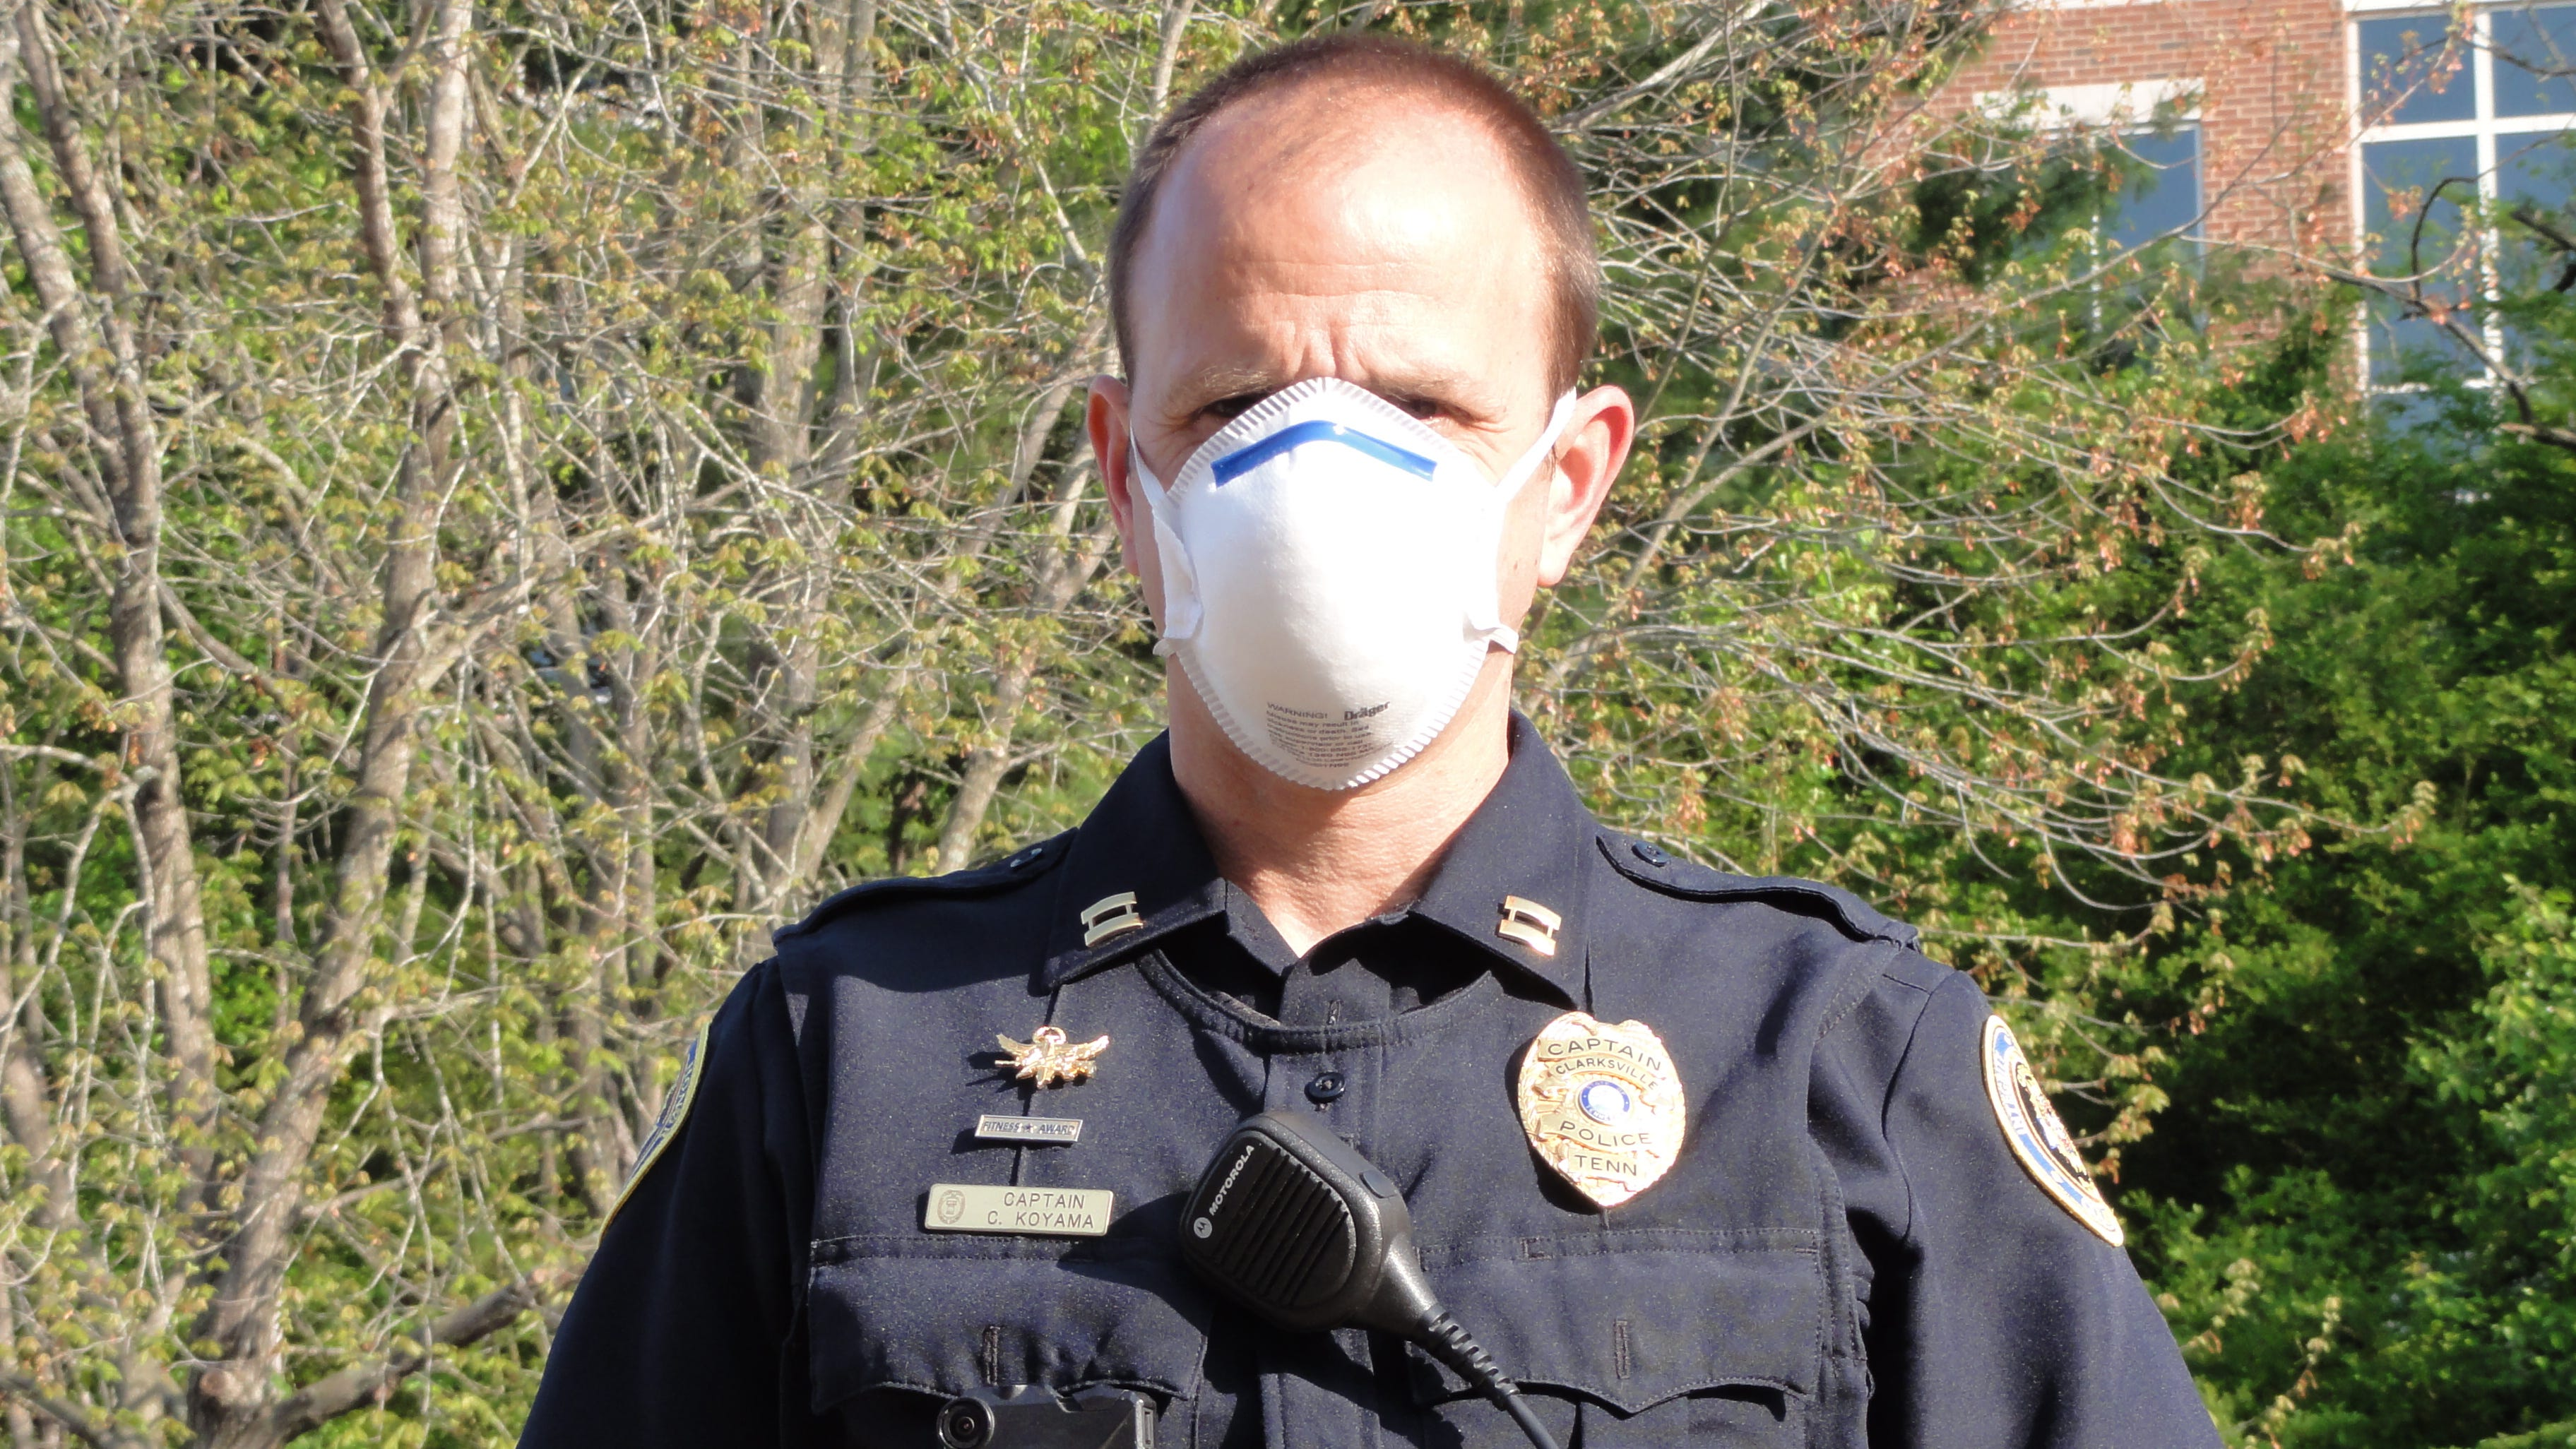 Clarksville first responders wearing face masks during coronavirus